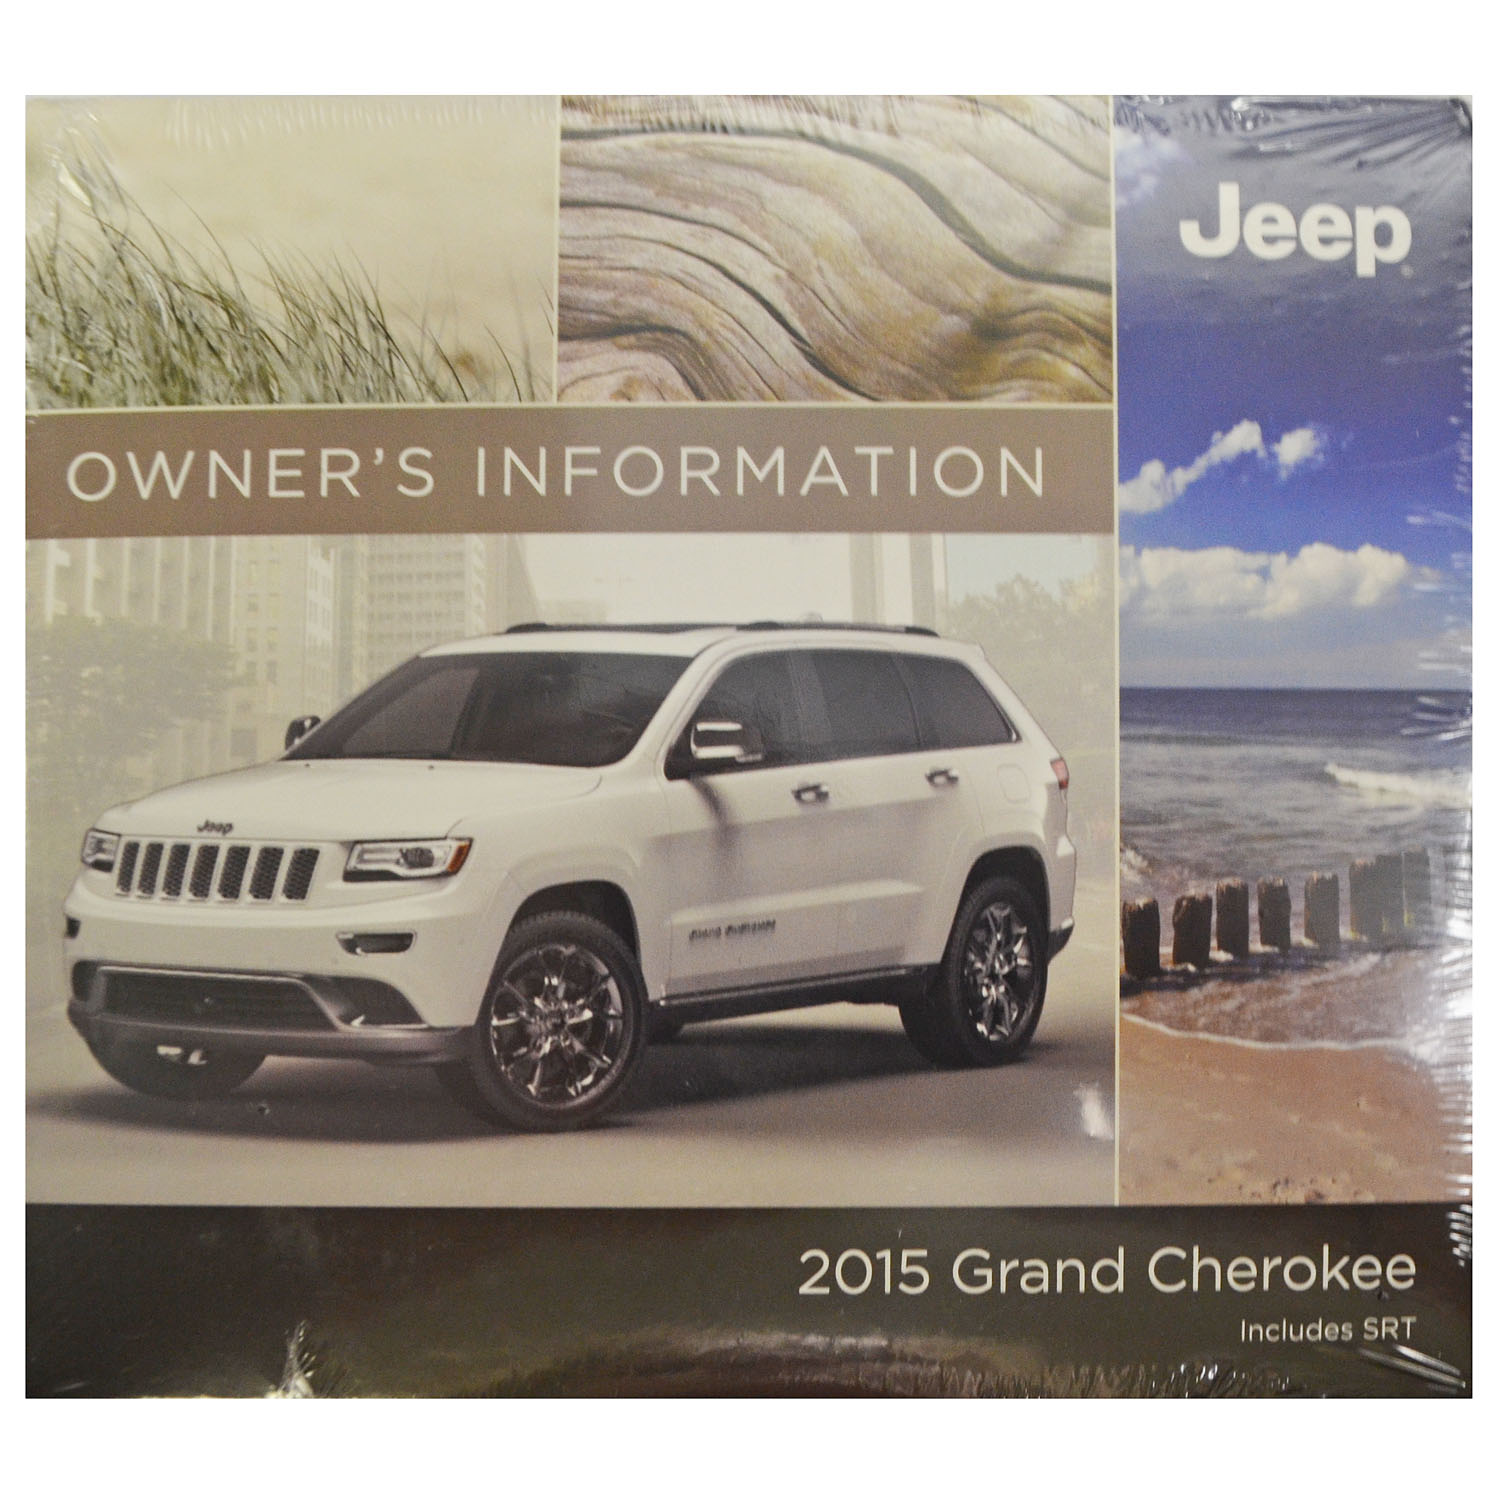 New Owners Information Manual DVD For 2015 Jeep Grand Cherokee  15WK741-426-AA